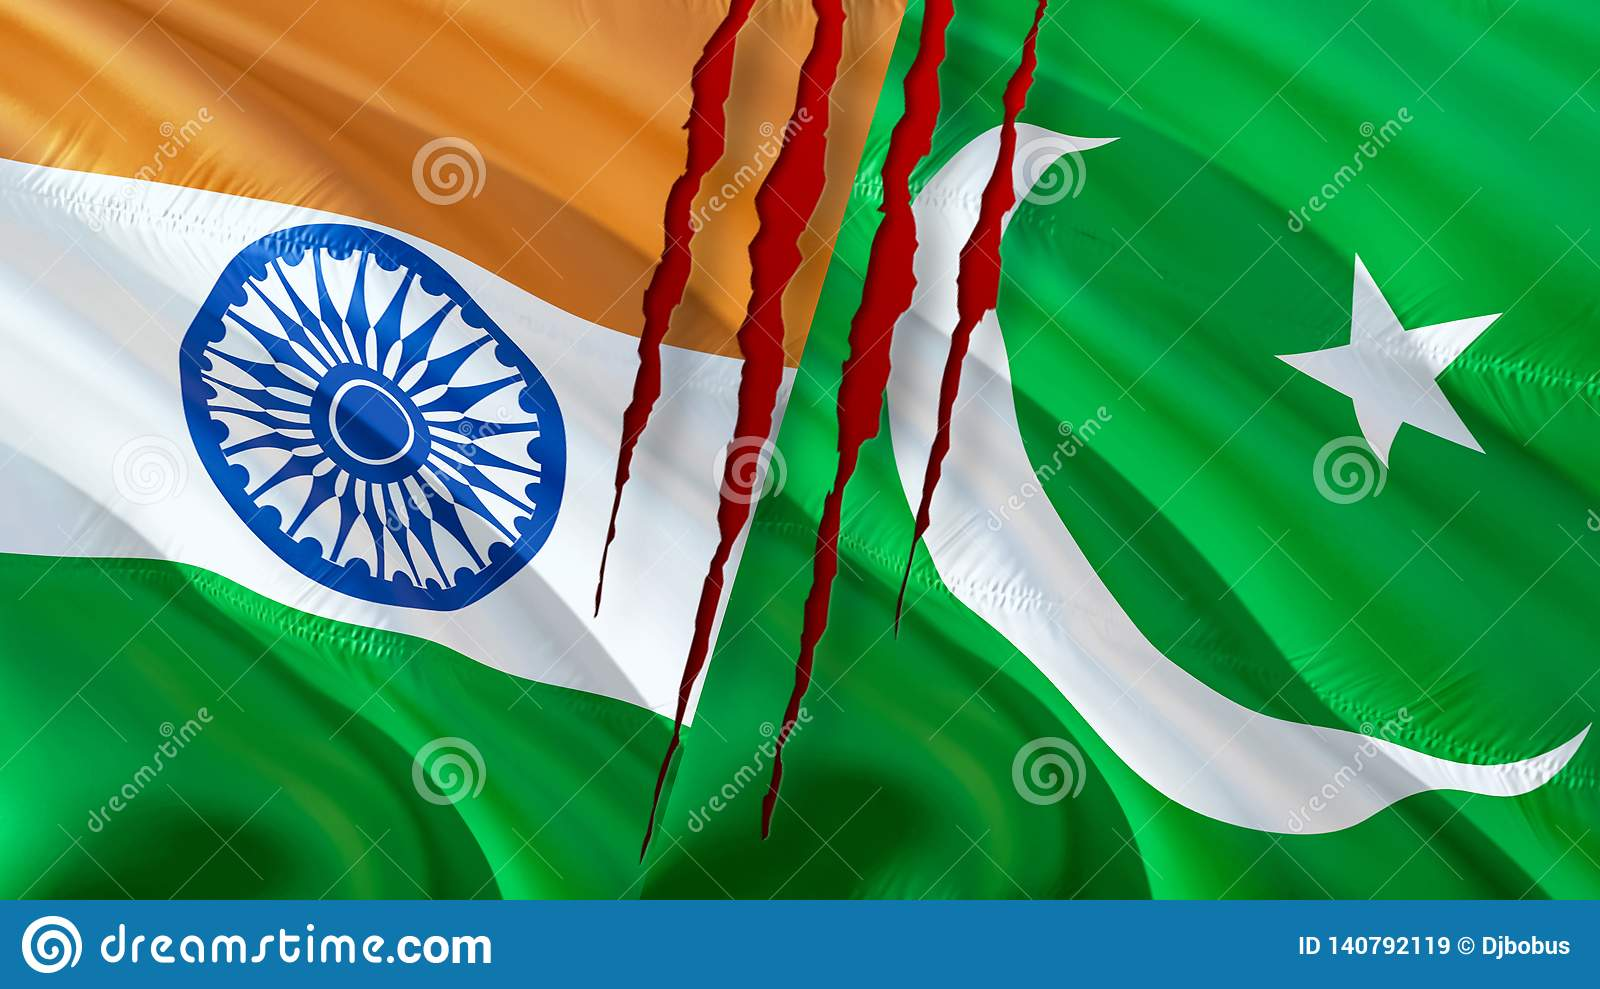 Pakistan and India flags. Waving flag design,3D rendering. Pakistan India flag picture, wallpaper image. Kashmir Indian Indo-